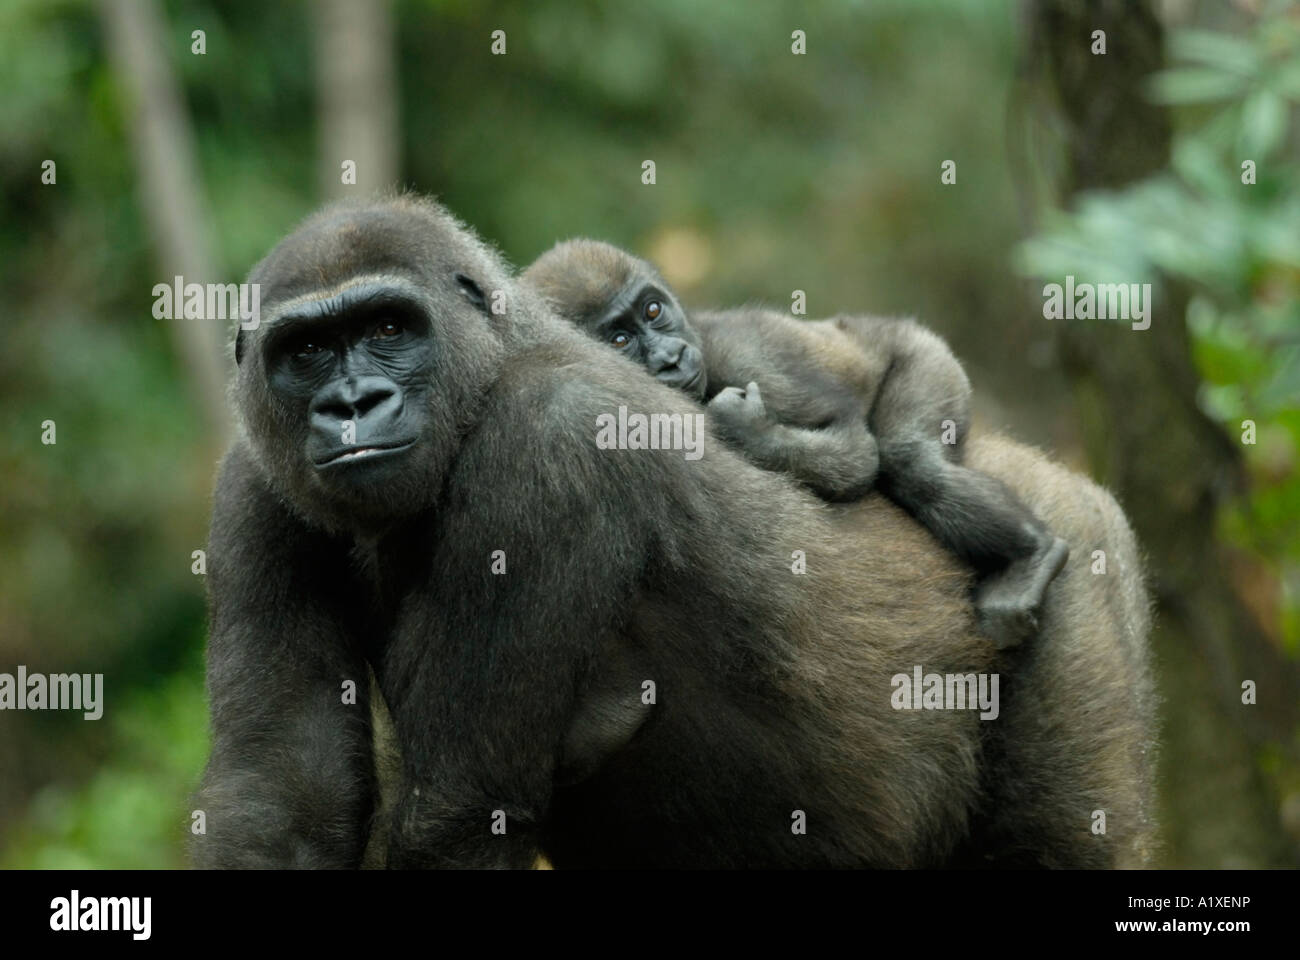 Mother gorilla with baby riding on her back - Stock Image